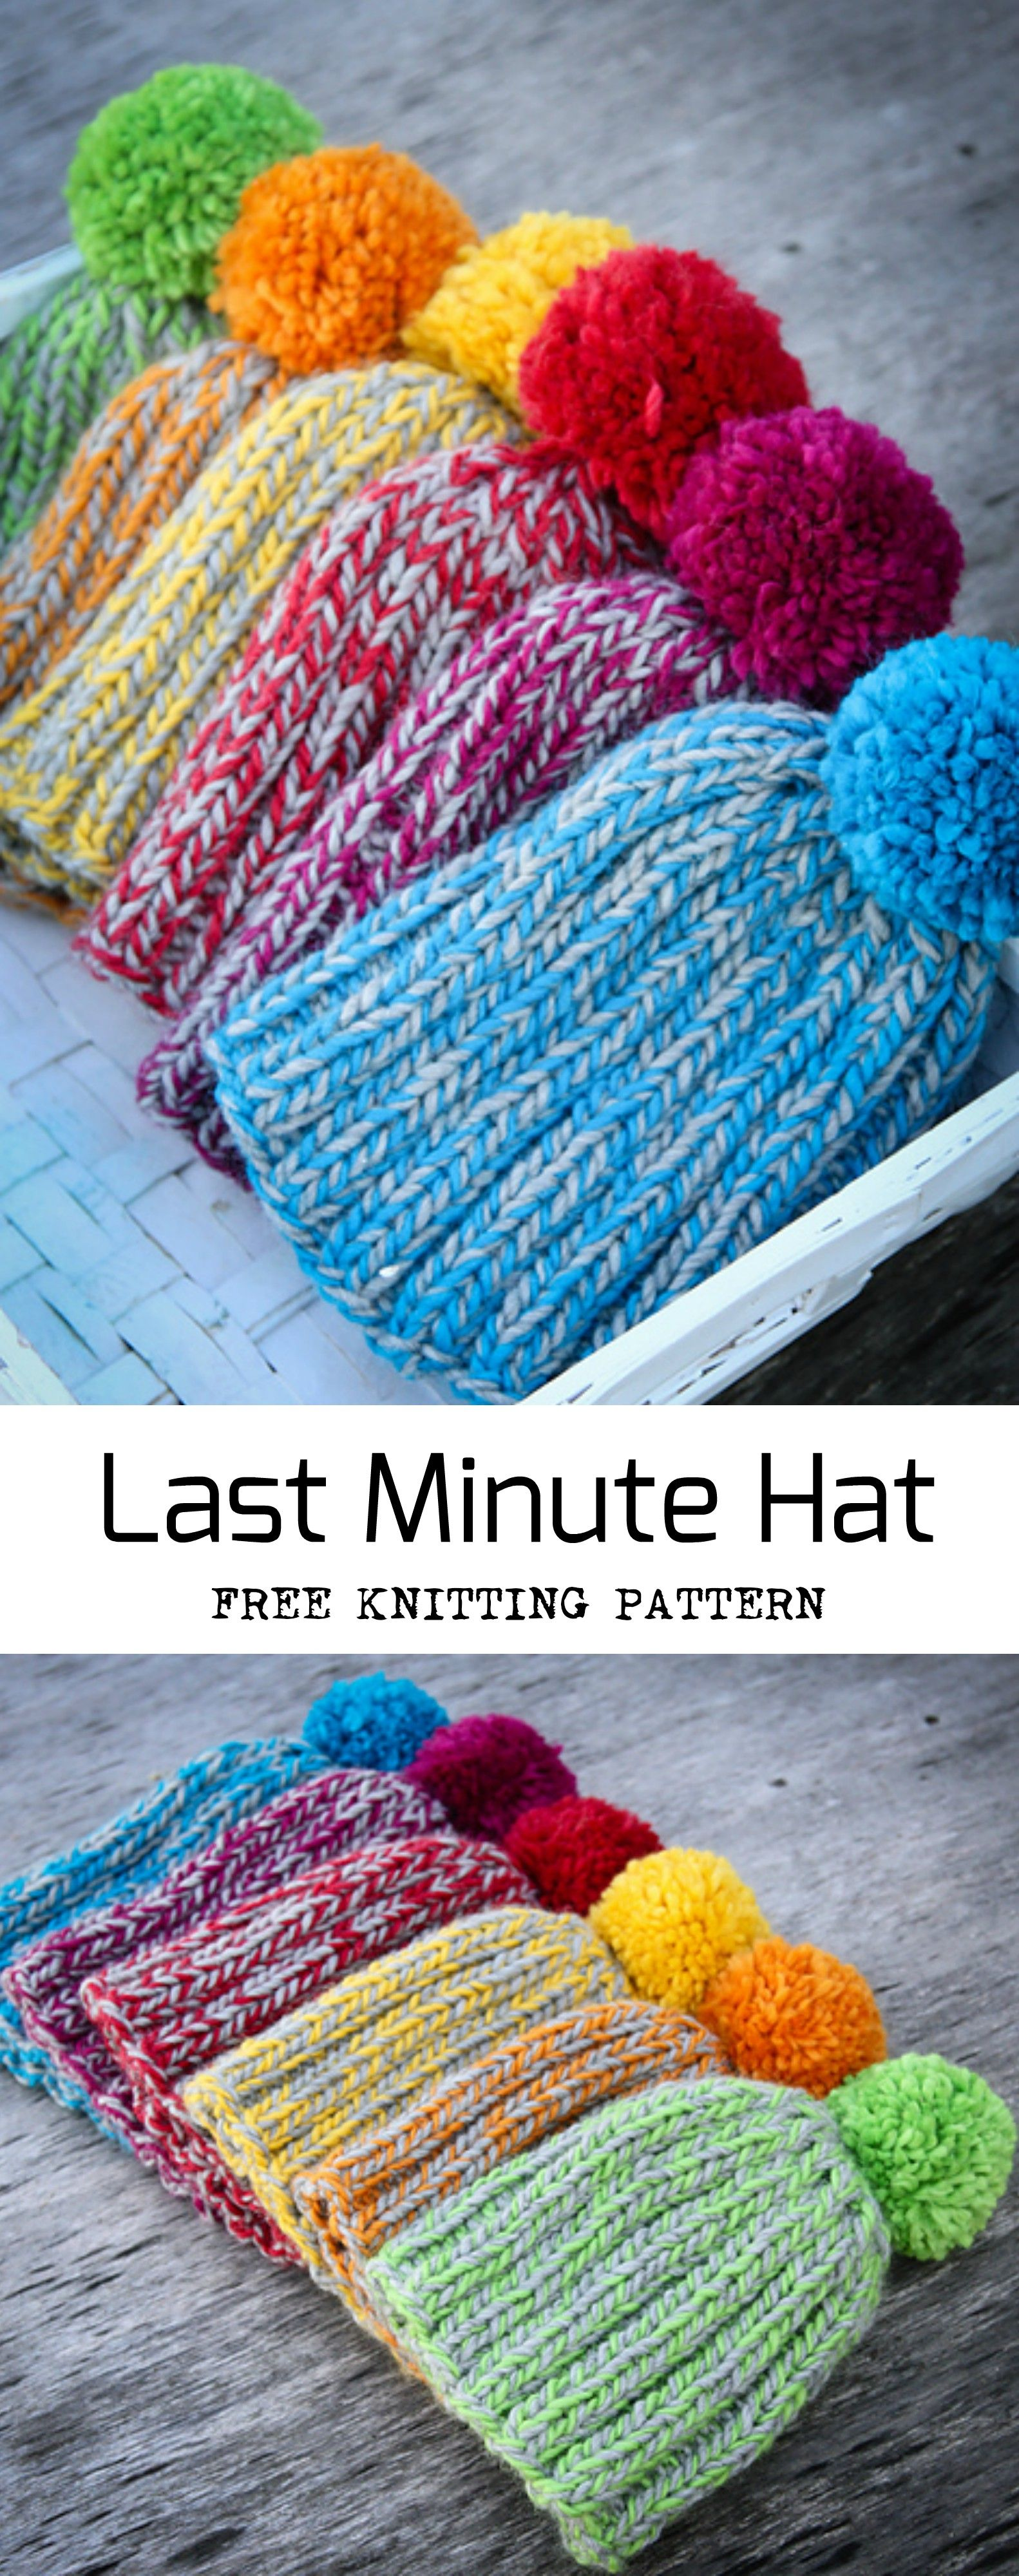 Last Minute Hat Free Knitting Pattern #knittingprojects